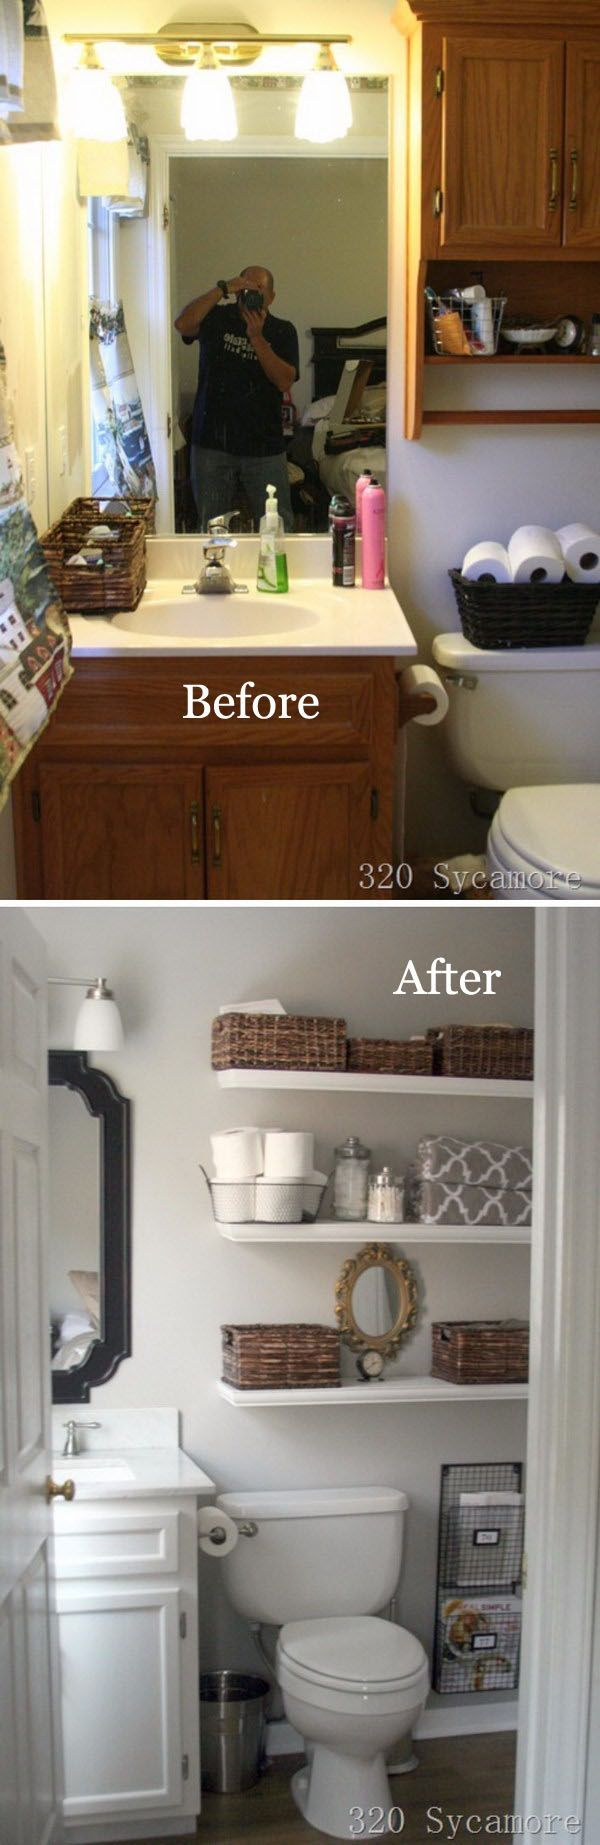 Small Bathroom Decorating Ideas Best 25 Small Bathroom Decorating Ideas On Pinterest  Bathroom